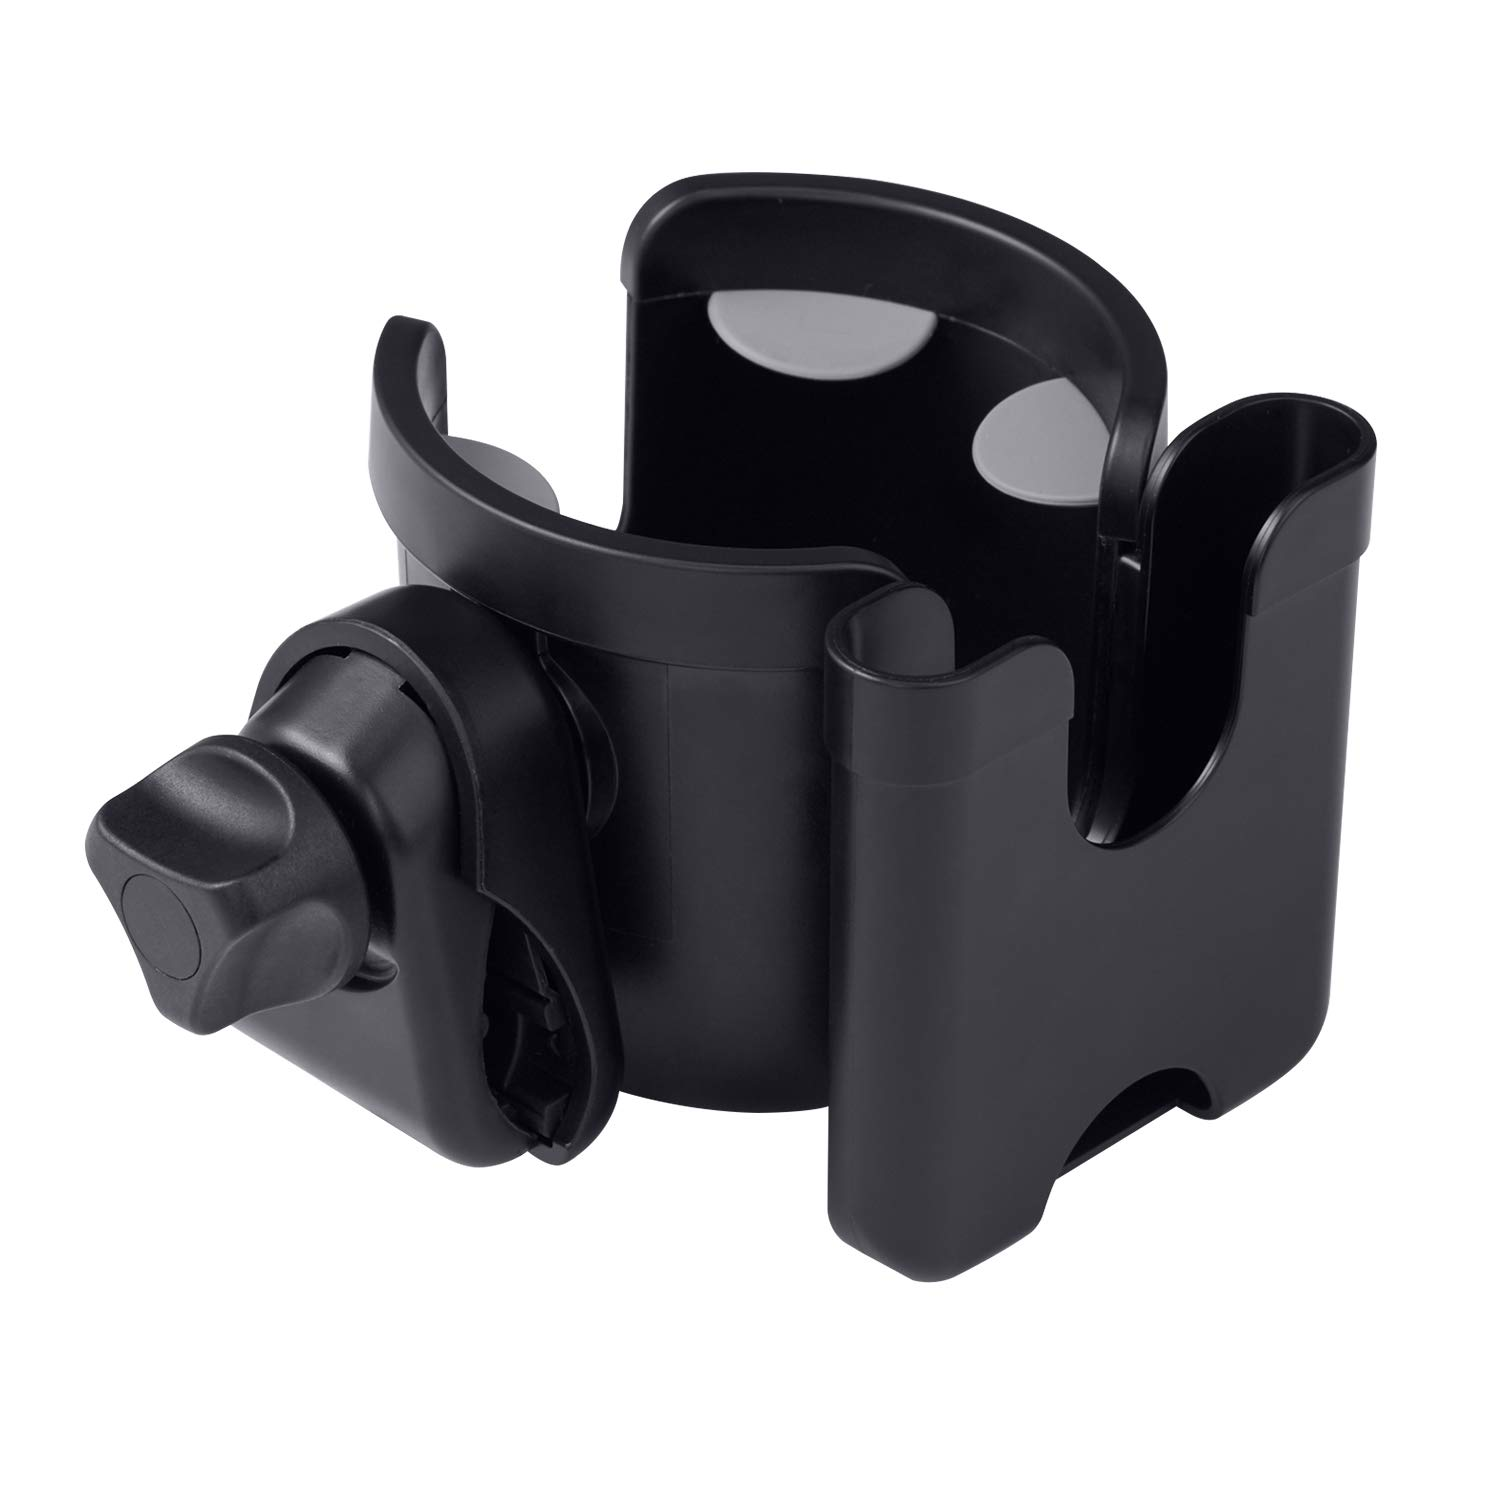 SUNVENO Stroller Universal Cup Holder Rotation 2 Max 47% OFF in Degrees 5% OFF 360